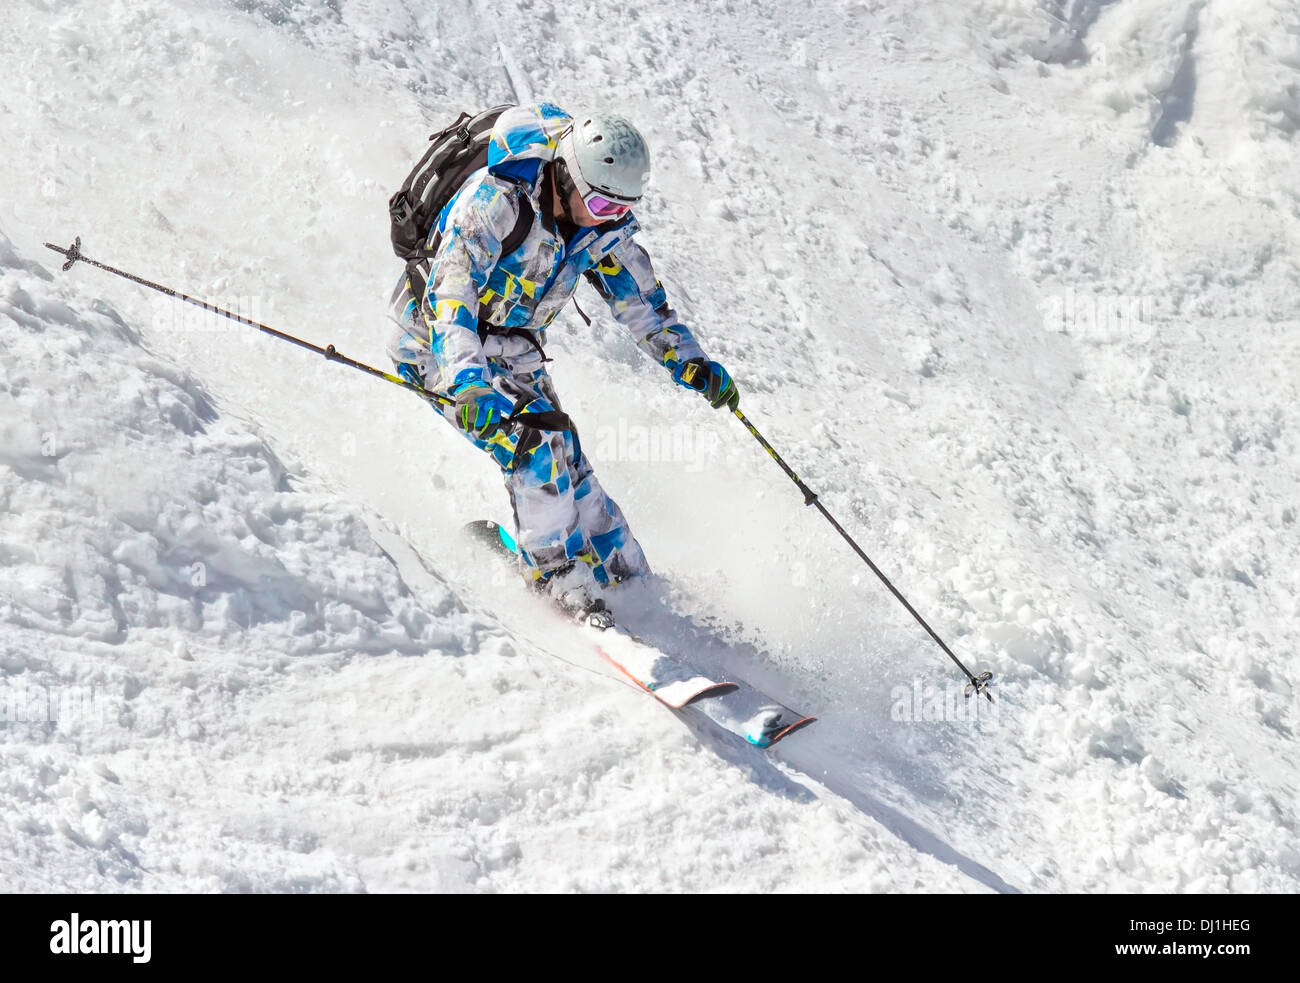 Man skier on a steep slope in the mountains - Stock Image